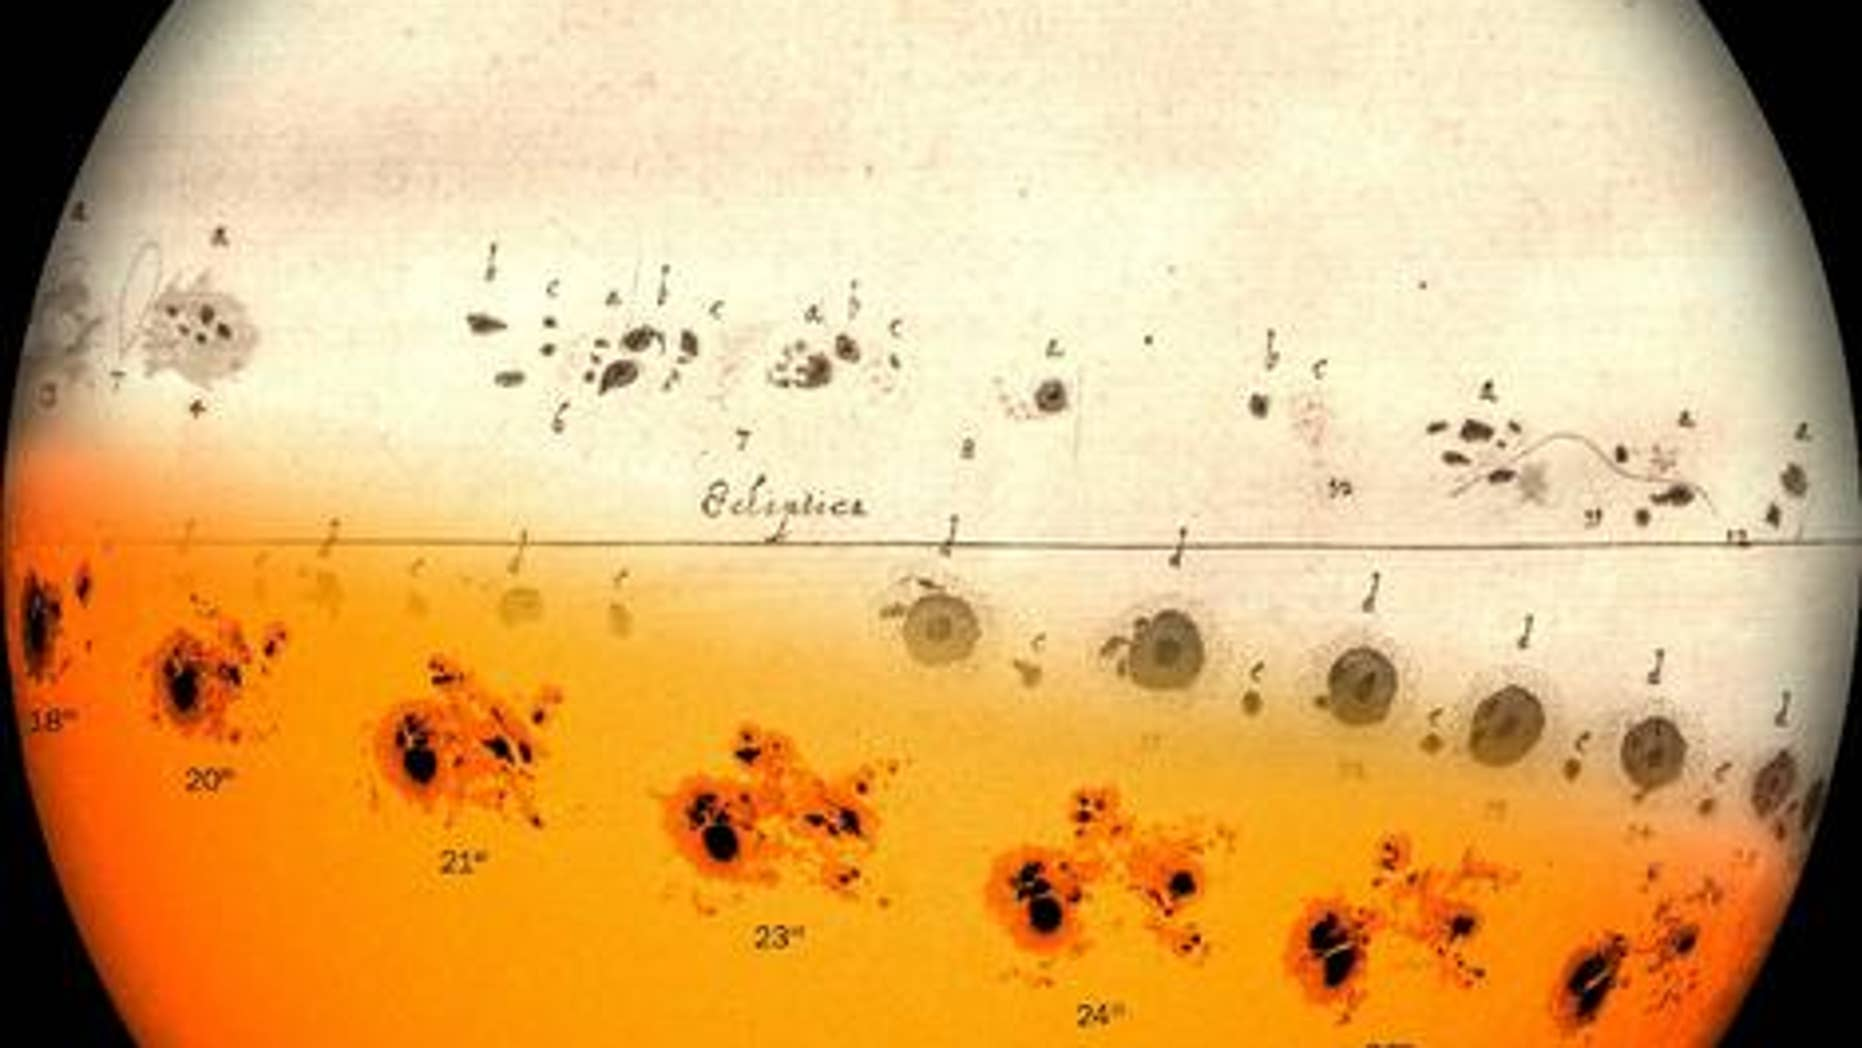 A team led by Andrés Muñoz-Jaramillo from the Southwest Research Institute integrated a sunspot drawing made by Hevelius in 1644 with images from NASA's Solar Dynamics Observatory. The variation of observation techniques comes through in the image.